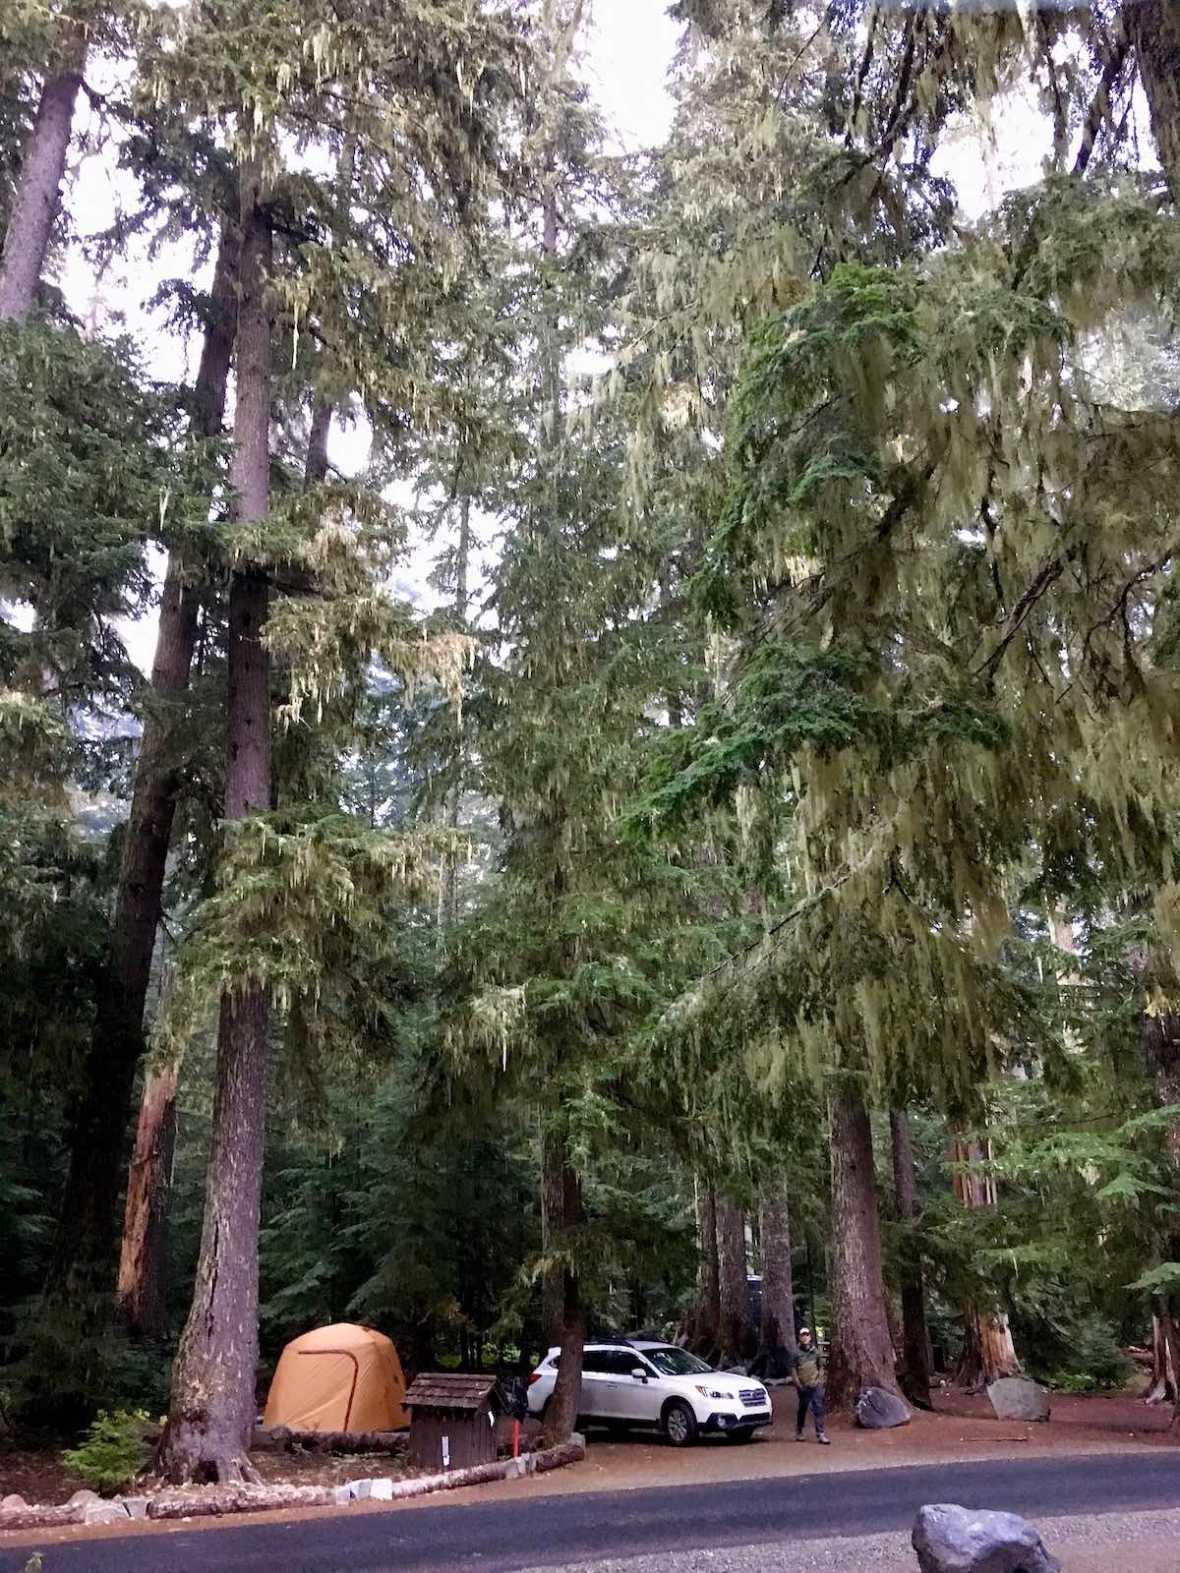 Camping under the tall trees in White River Campgound in Mount Ranier National Park